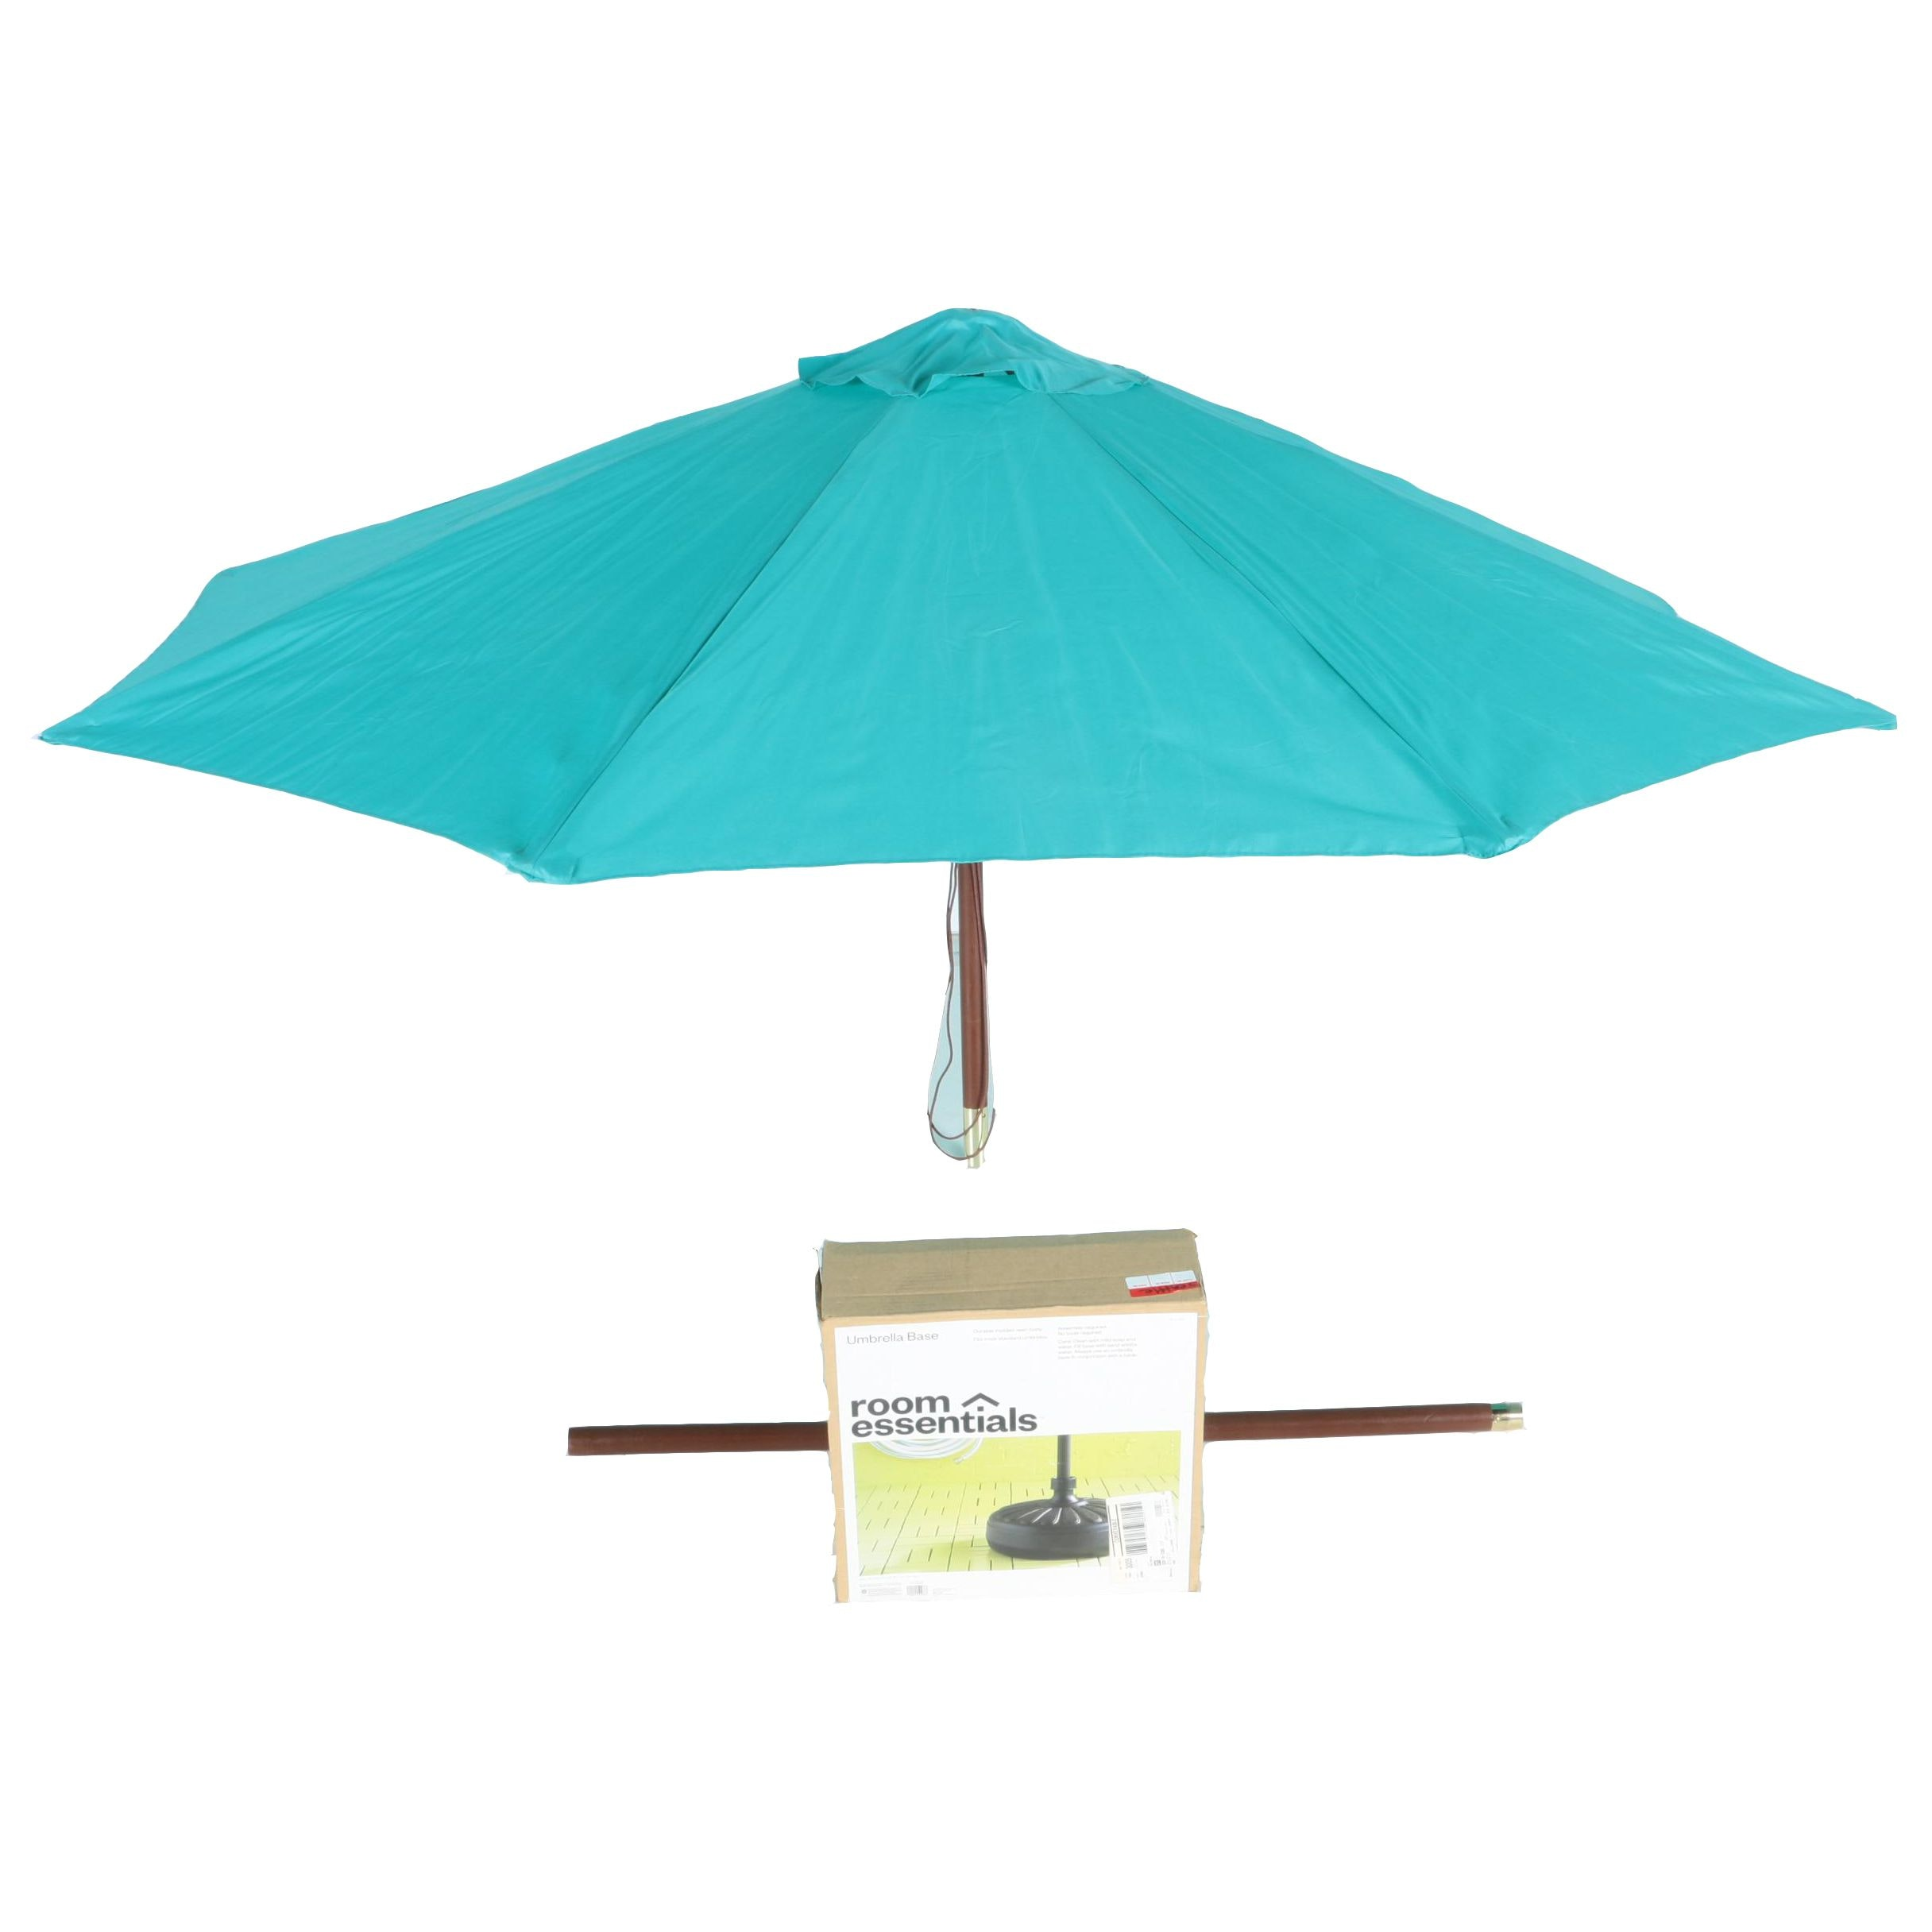 Teal Patio Umbrella with Stand